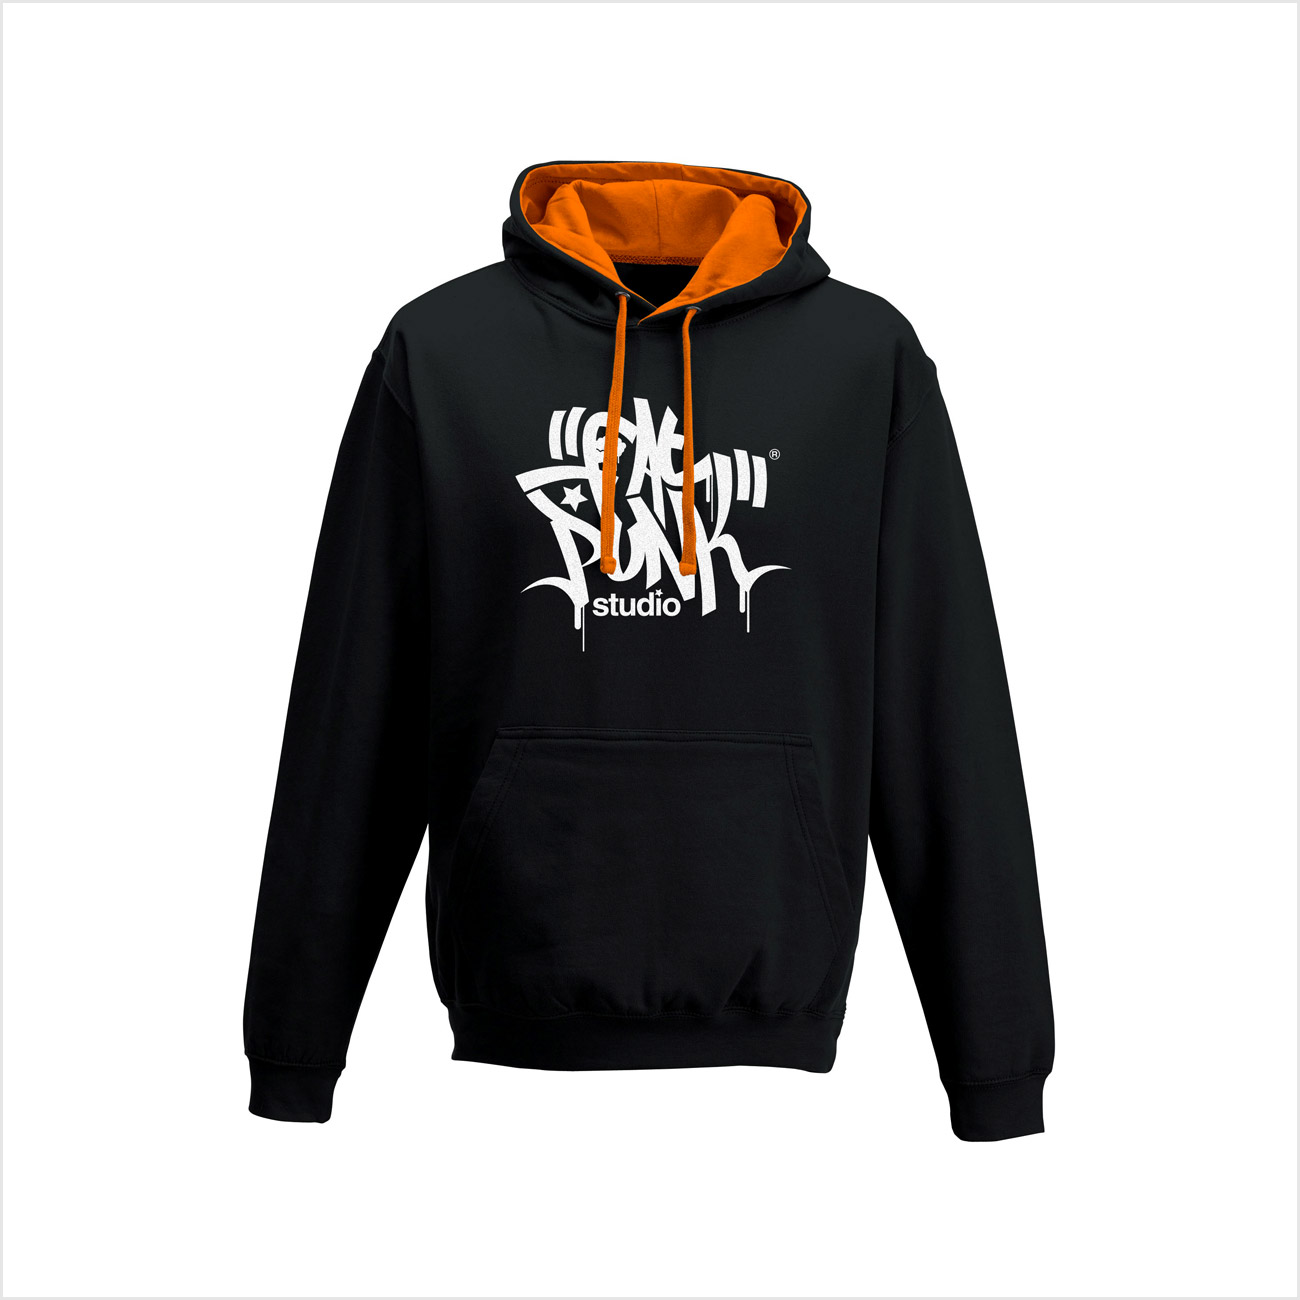 fat-punk-studio-team-logo-hoodie-01